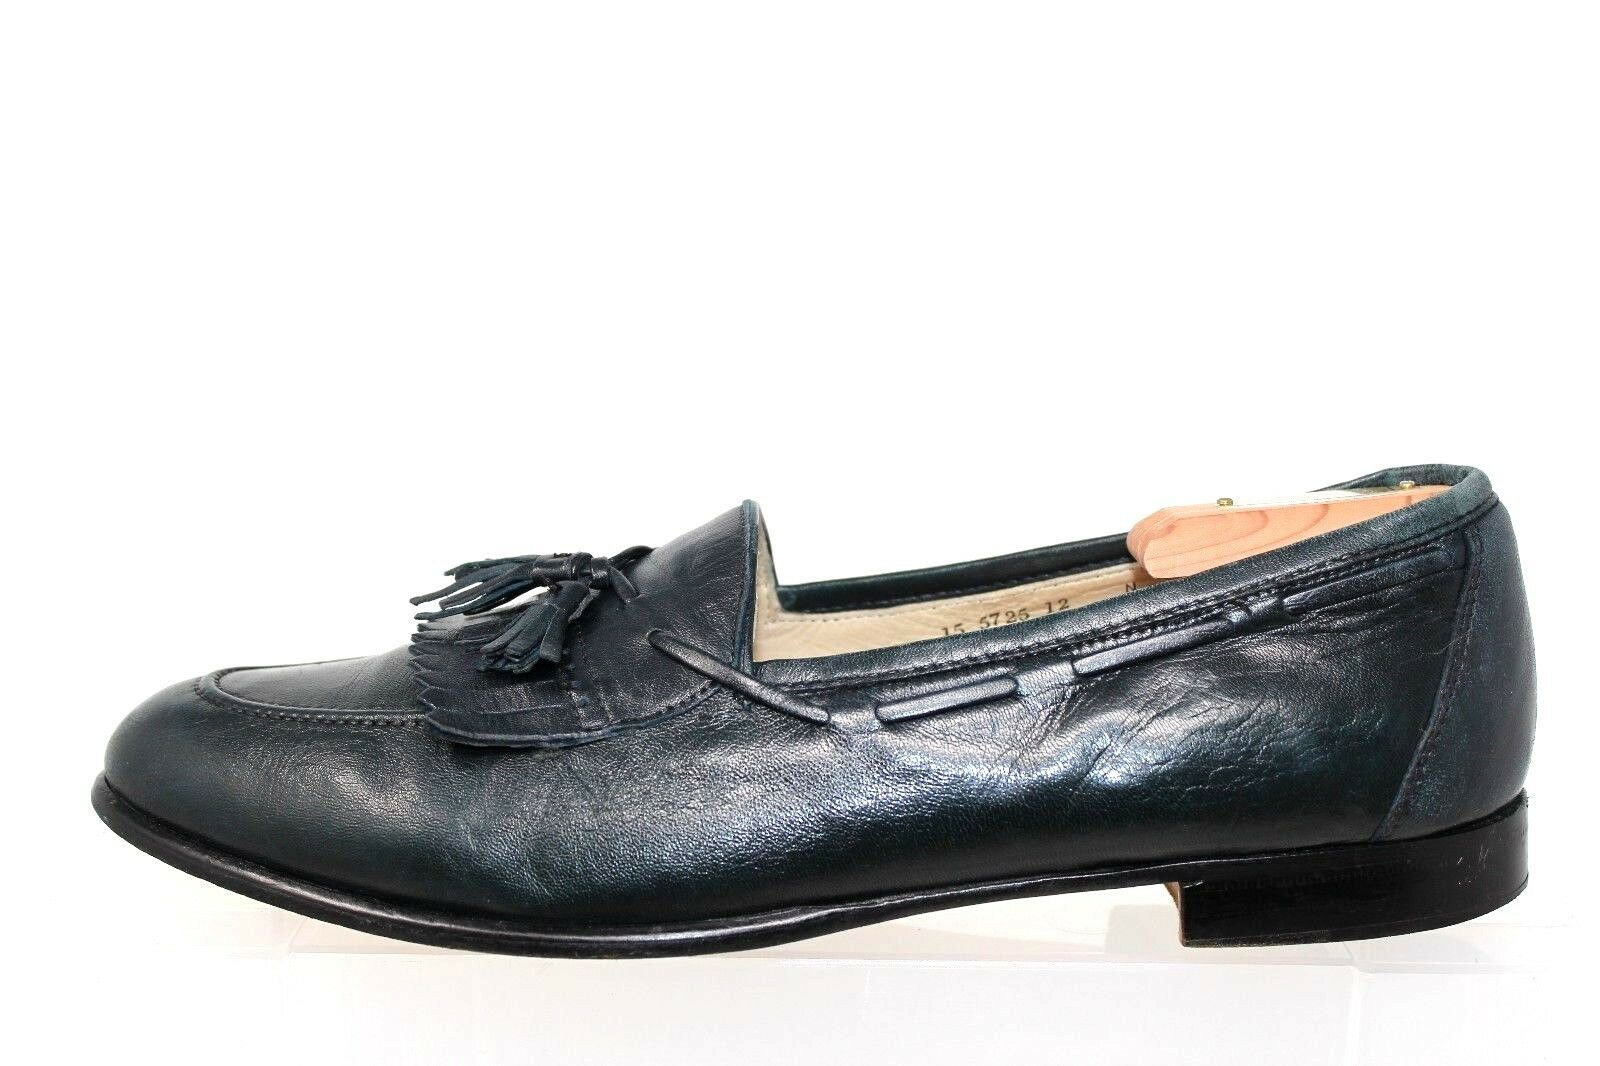 Johnston Murphy bluee Leather Kiltie Tassel Slip On Dress Loafers  12N